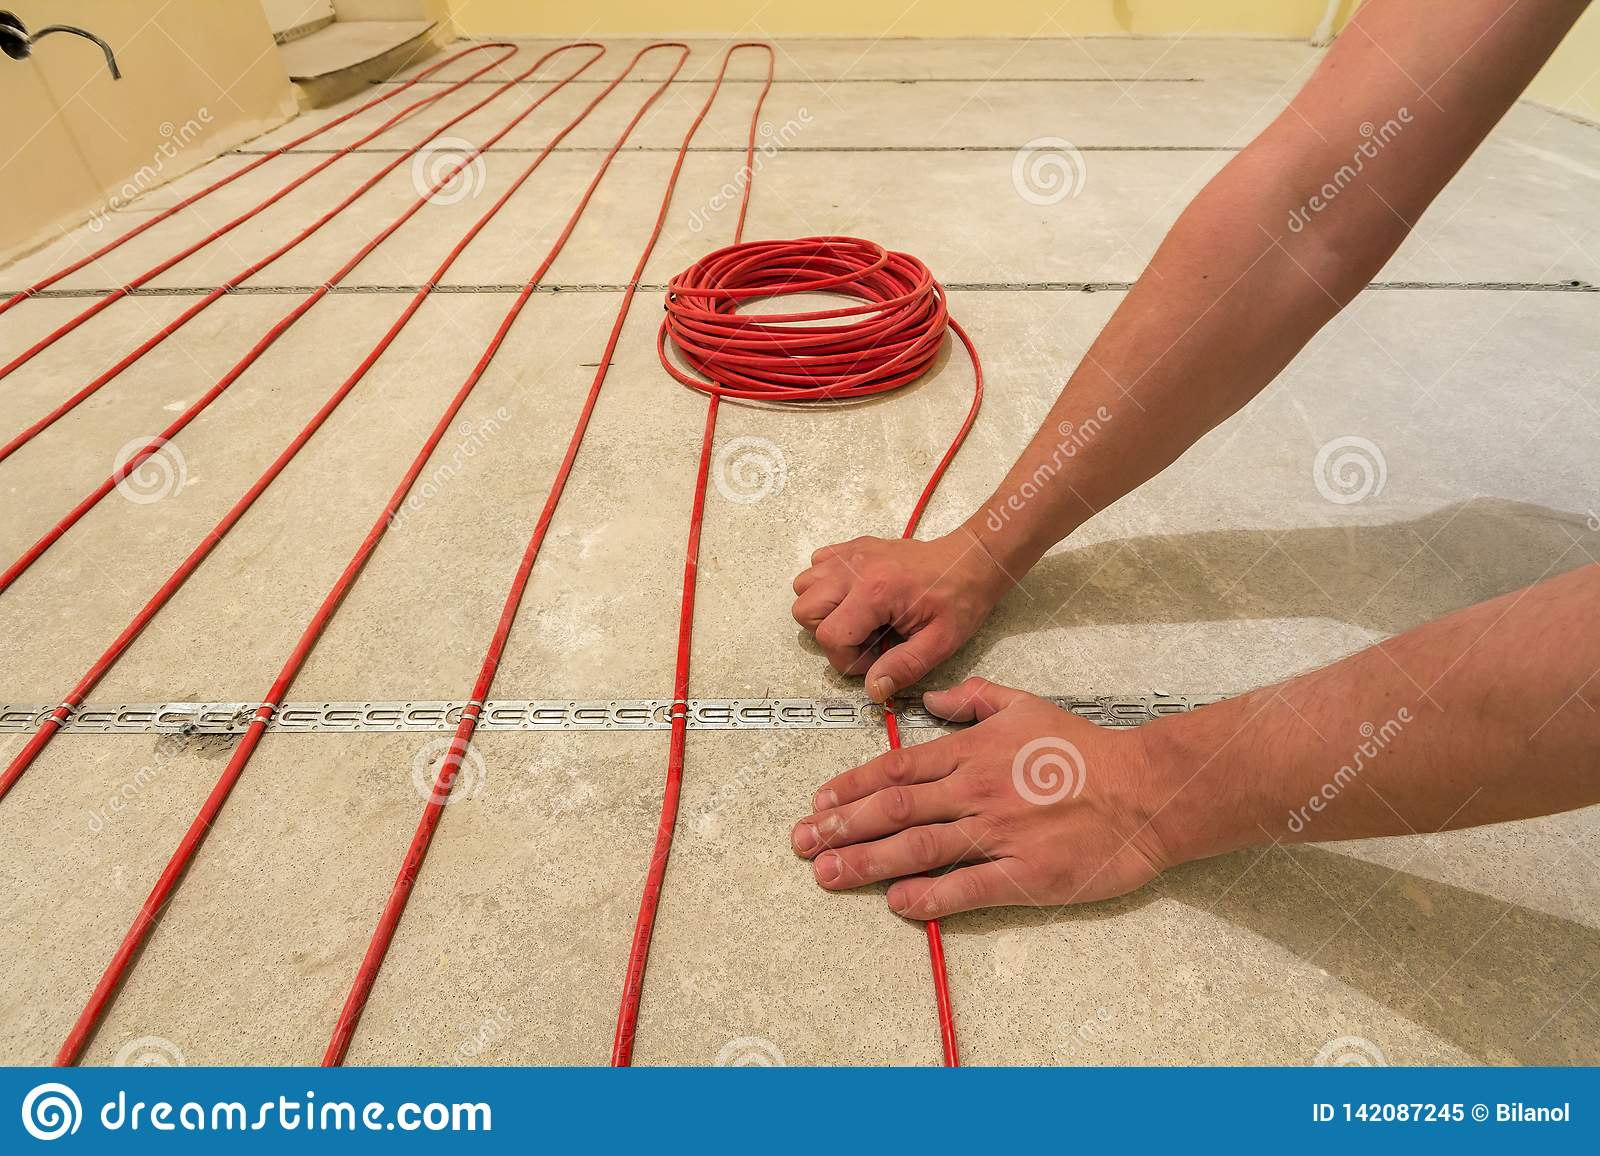 Pleasing Electrician Installing Heating Red Electrical Cable Wire On Cement Wiring Digital Resources Timewpwclawcorpcom